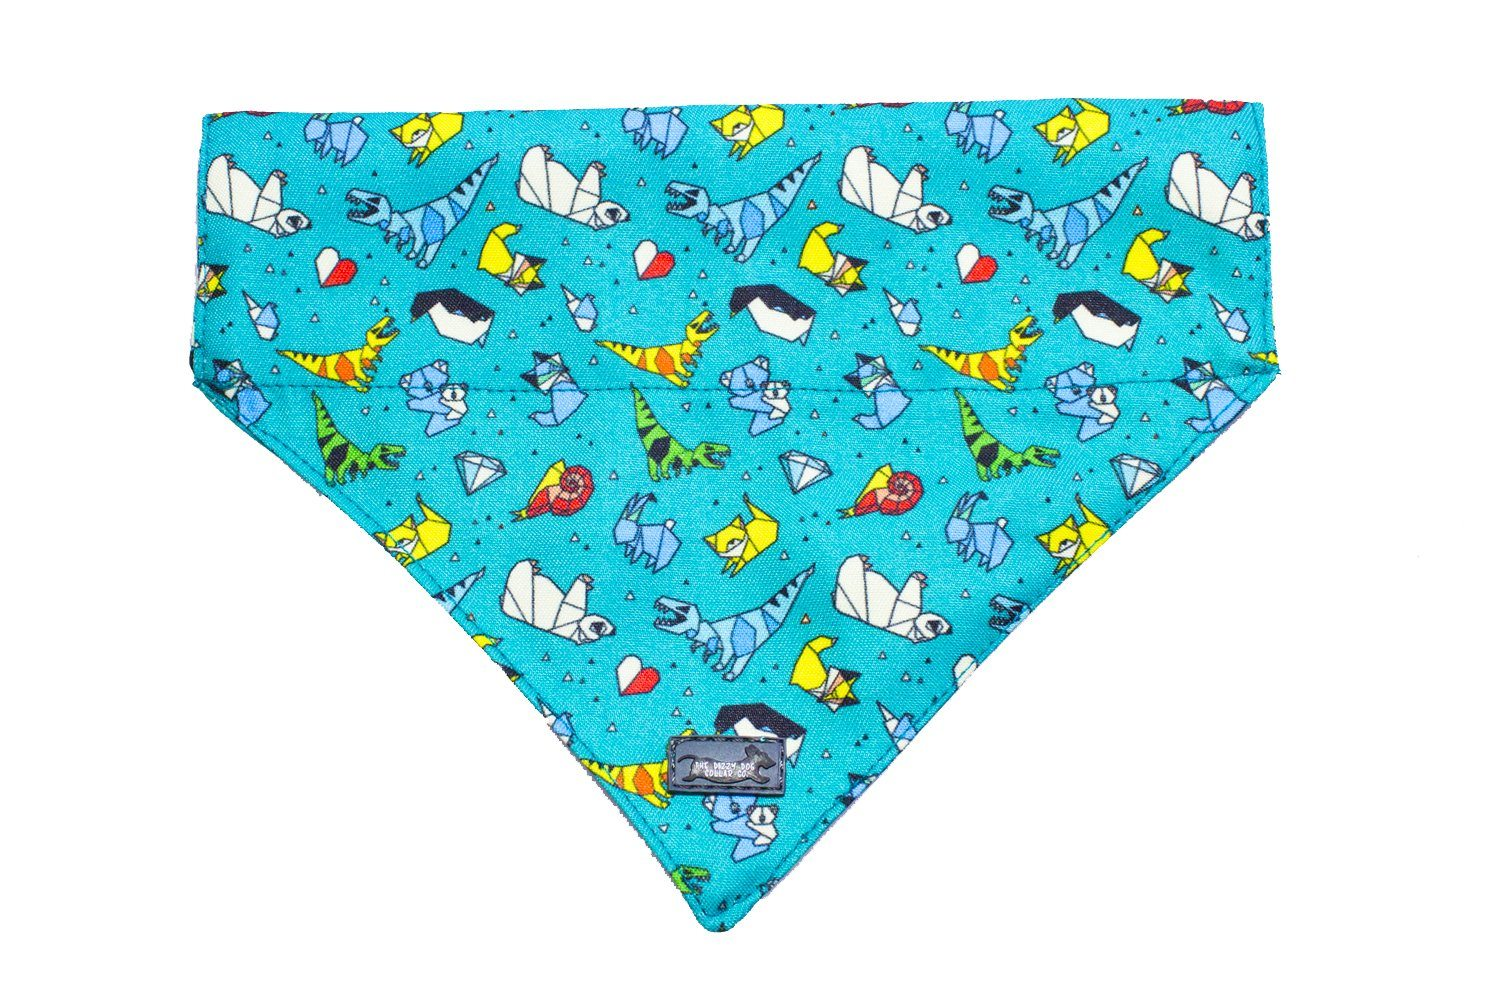 Origami Ark Dog Bandana - Slip on / Over the collar bandana-Dizzy Dog Collars-Dizzy Dog Collars